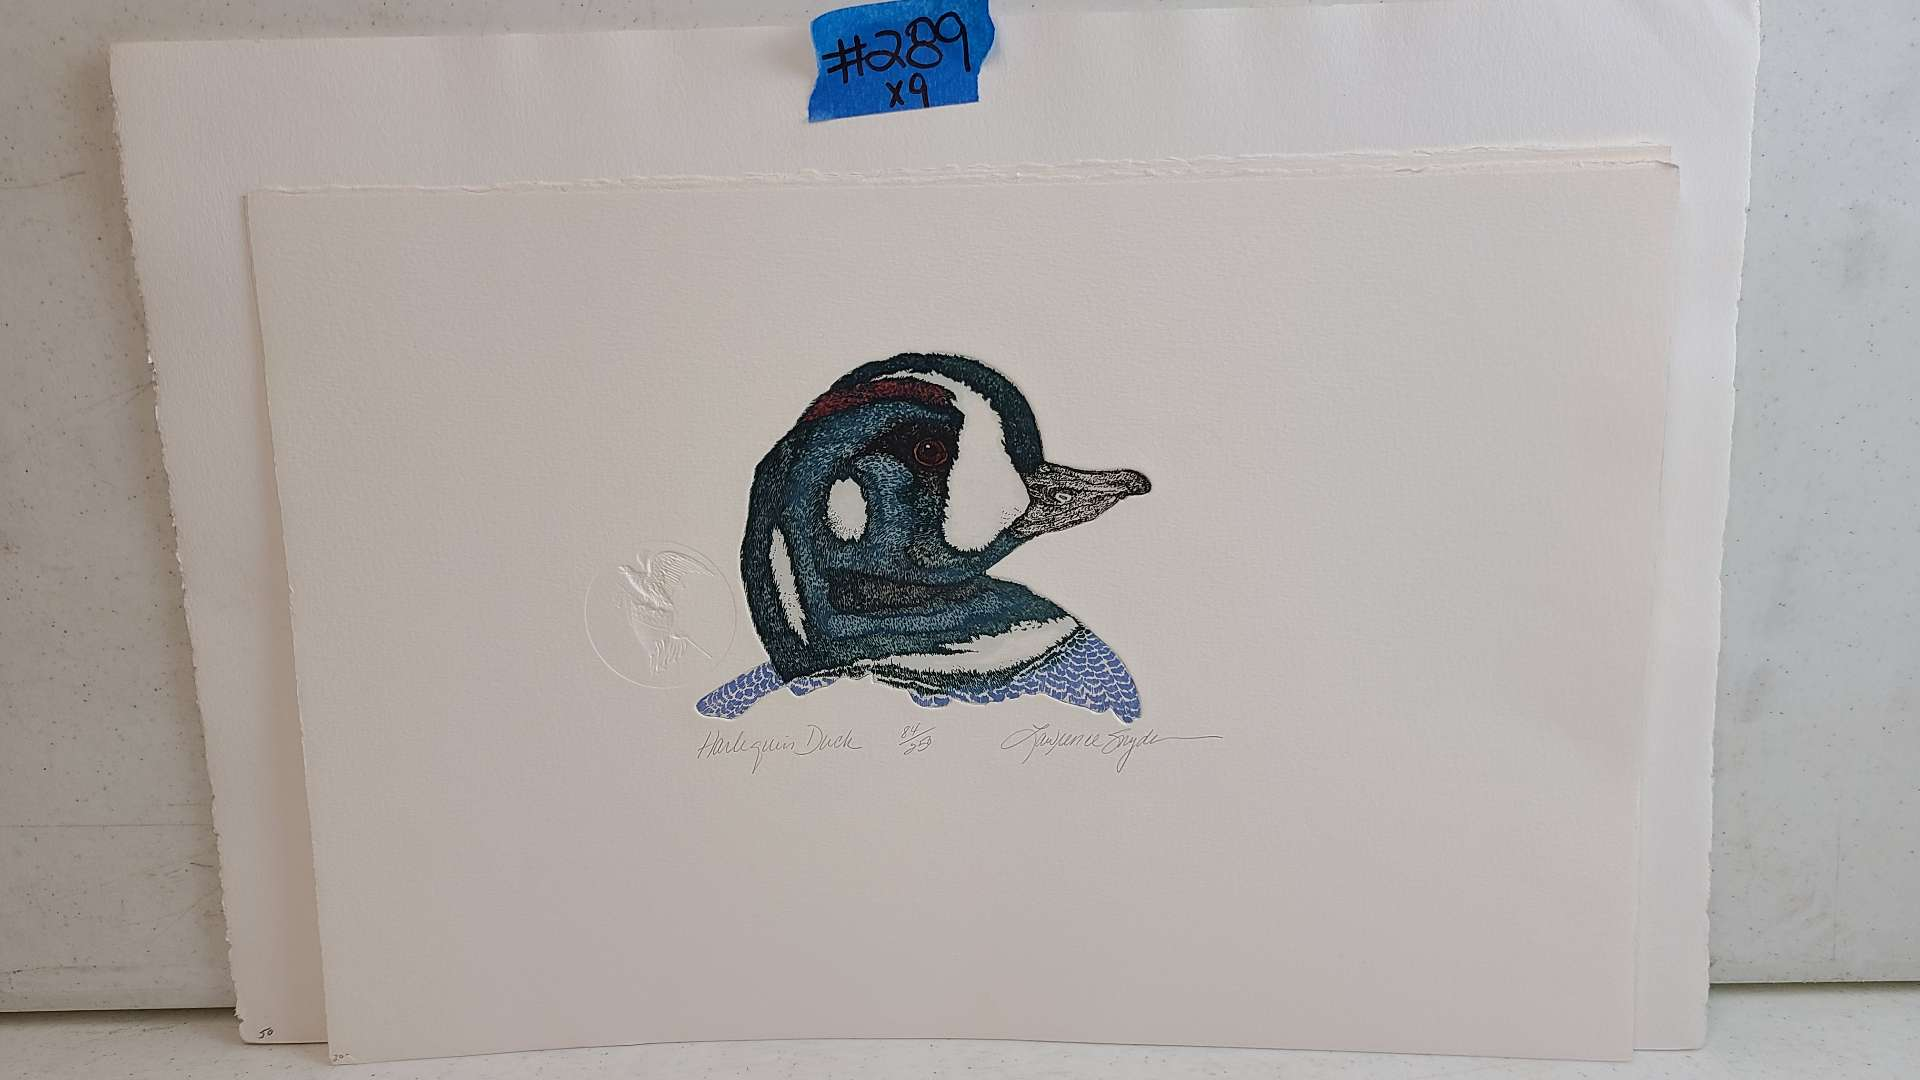 Lot # 289 Signed & Numbered Duck Lithograph